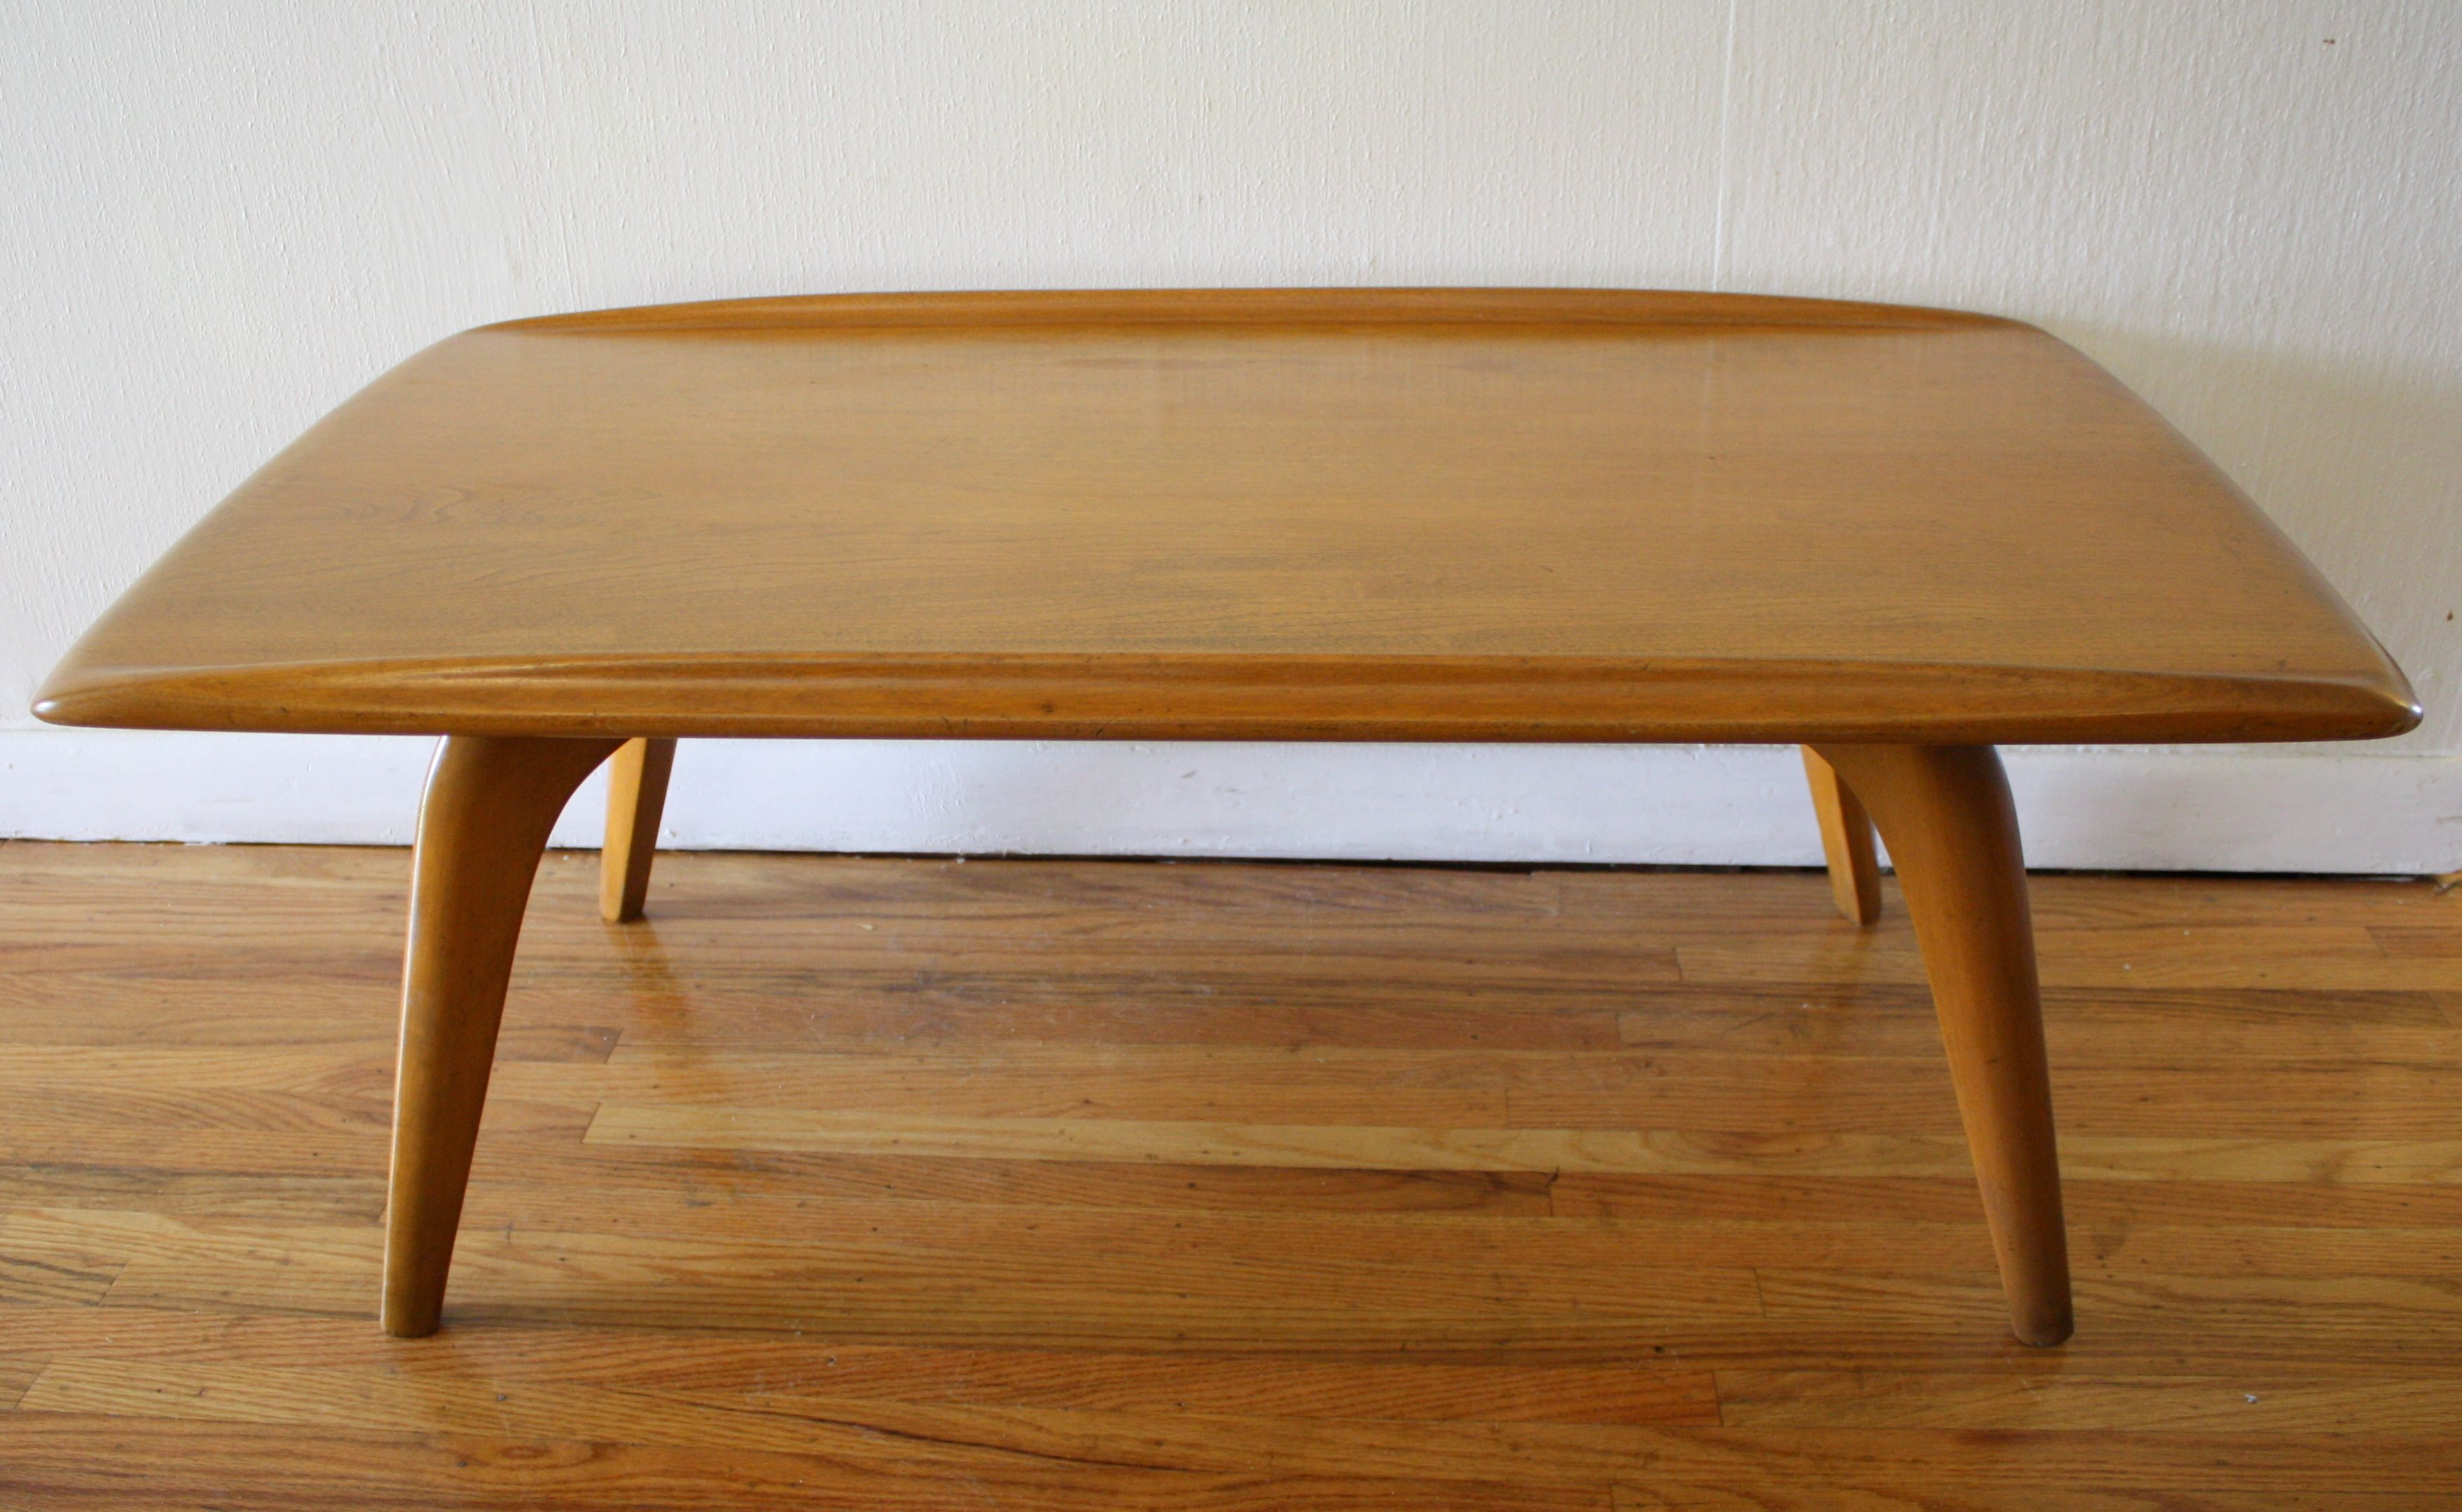 Heywood wakefield coffee table with surfboard edges this